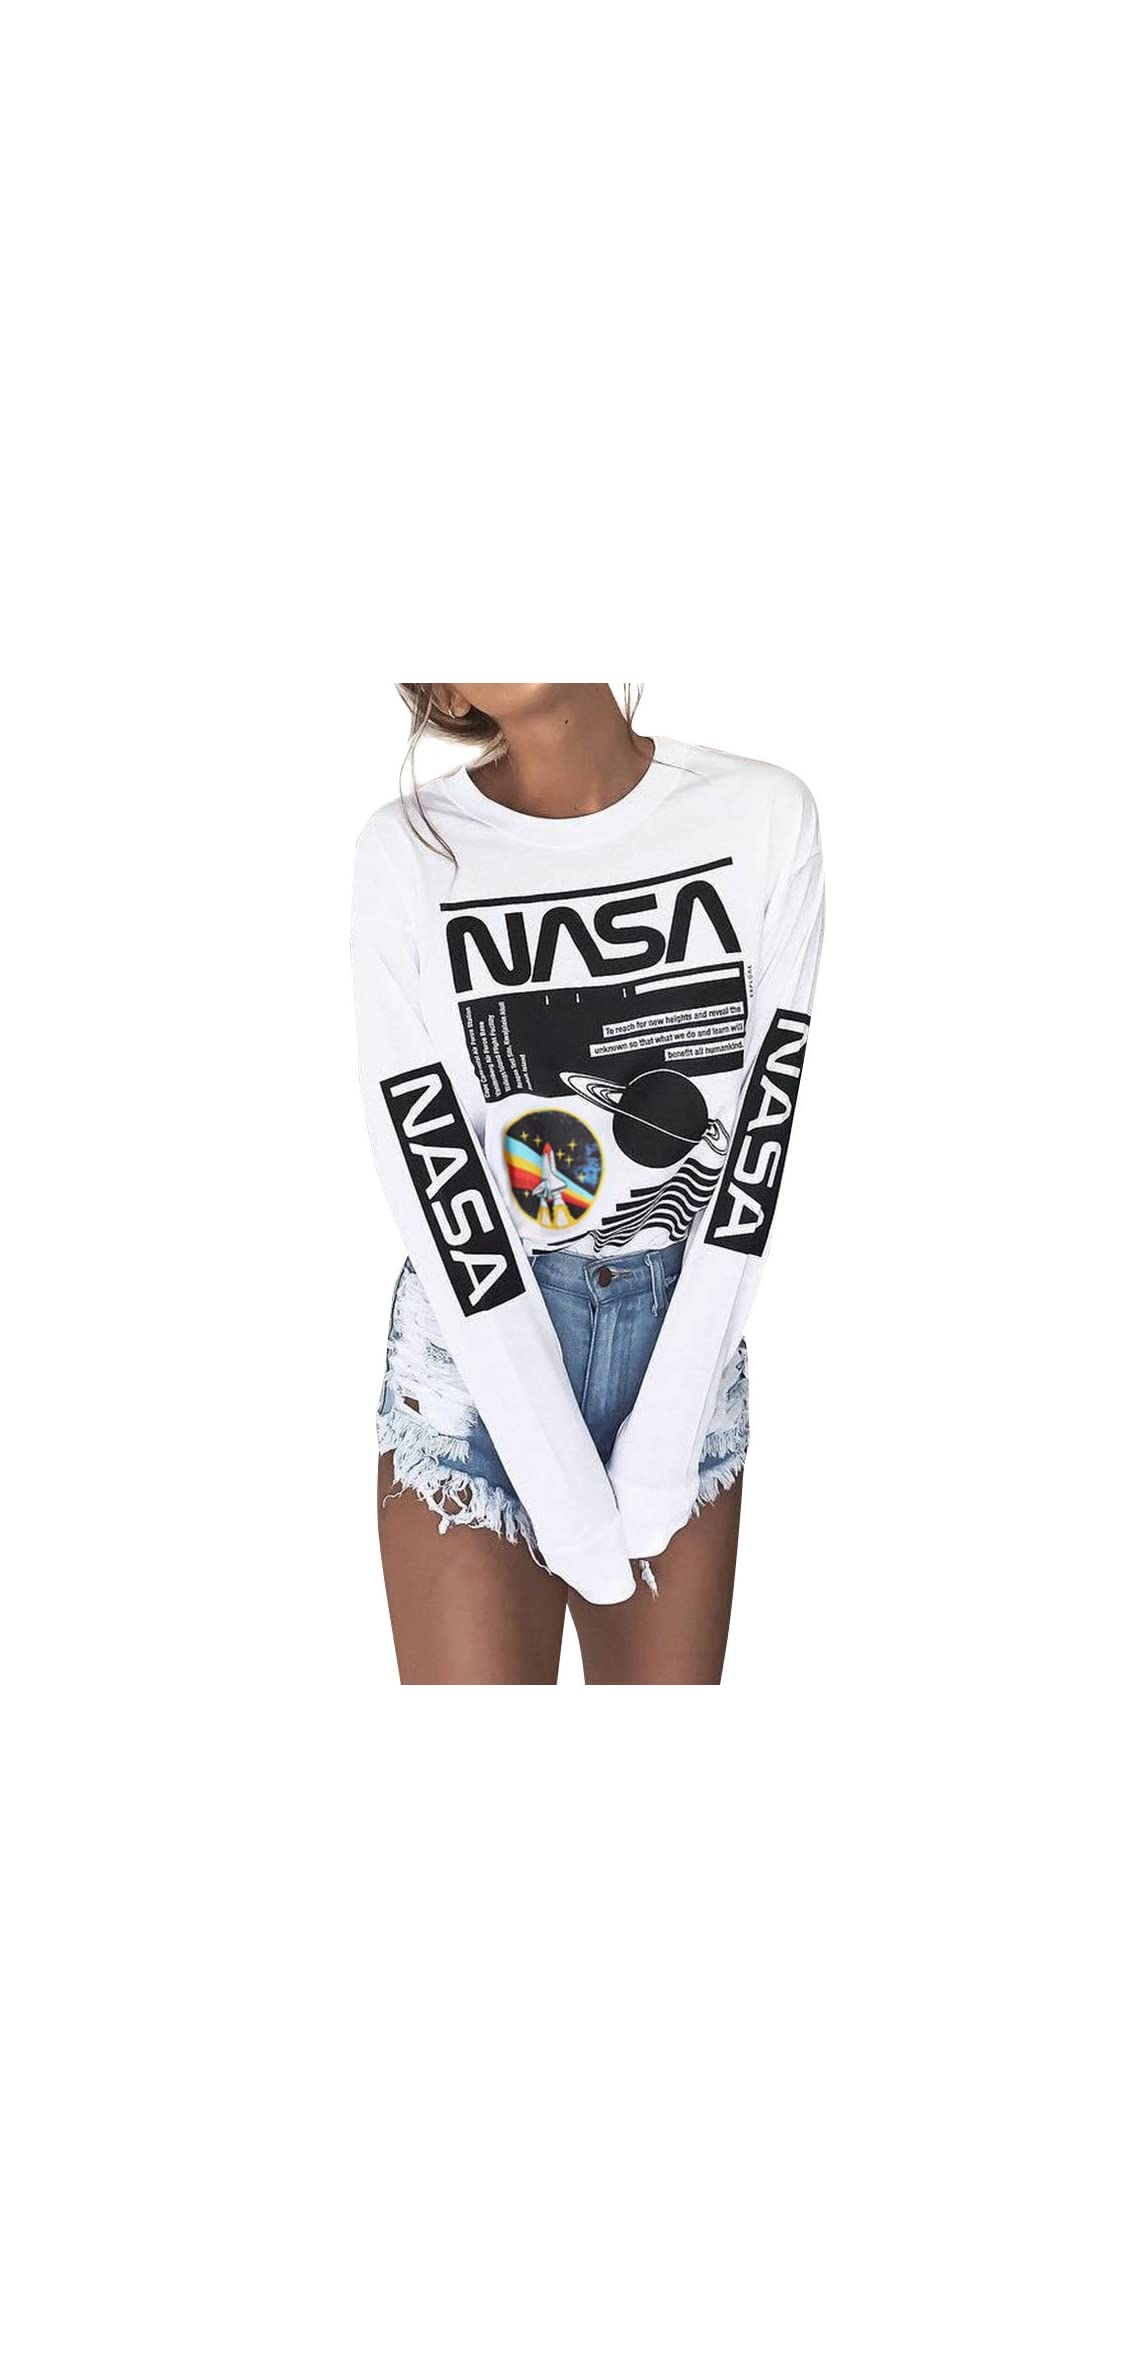 Crew Neck Long Sleeve Letter Printed Shirt Graphic Tee